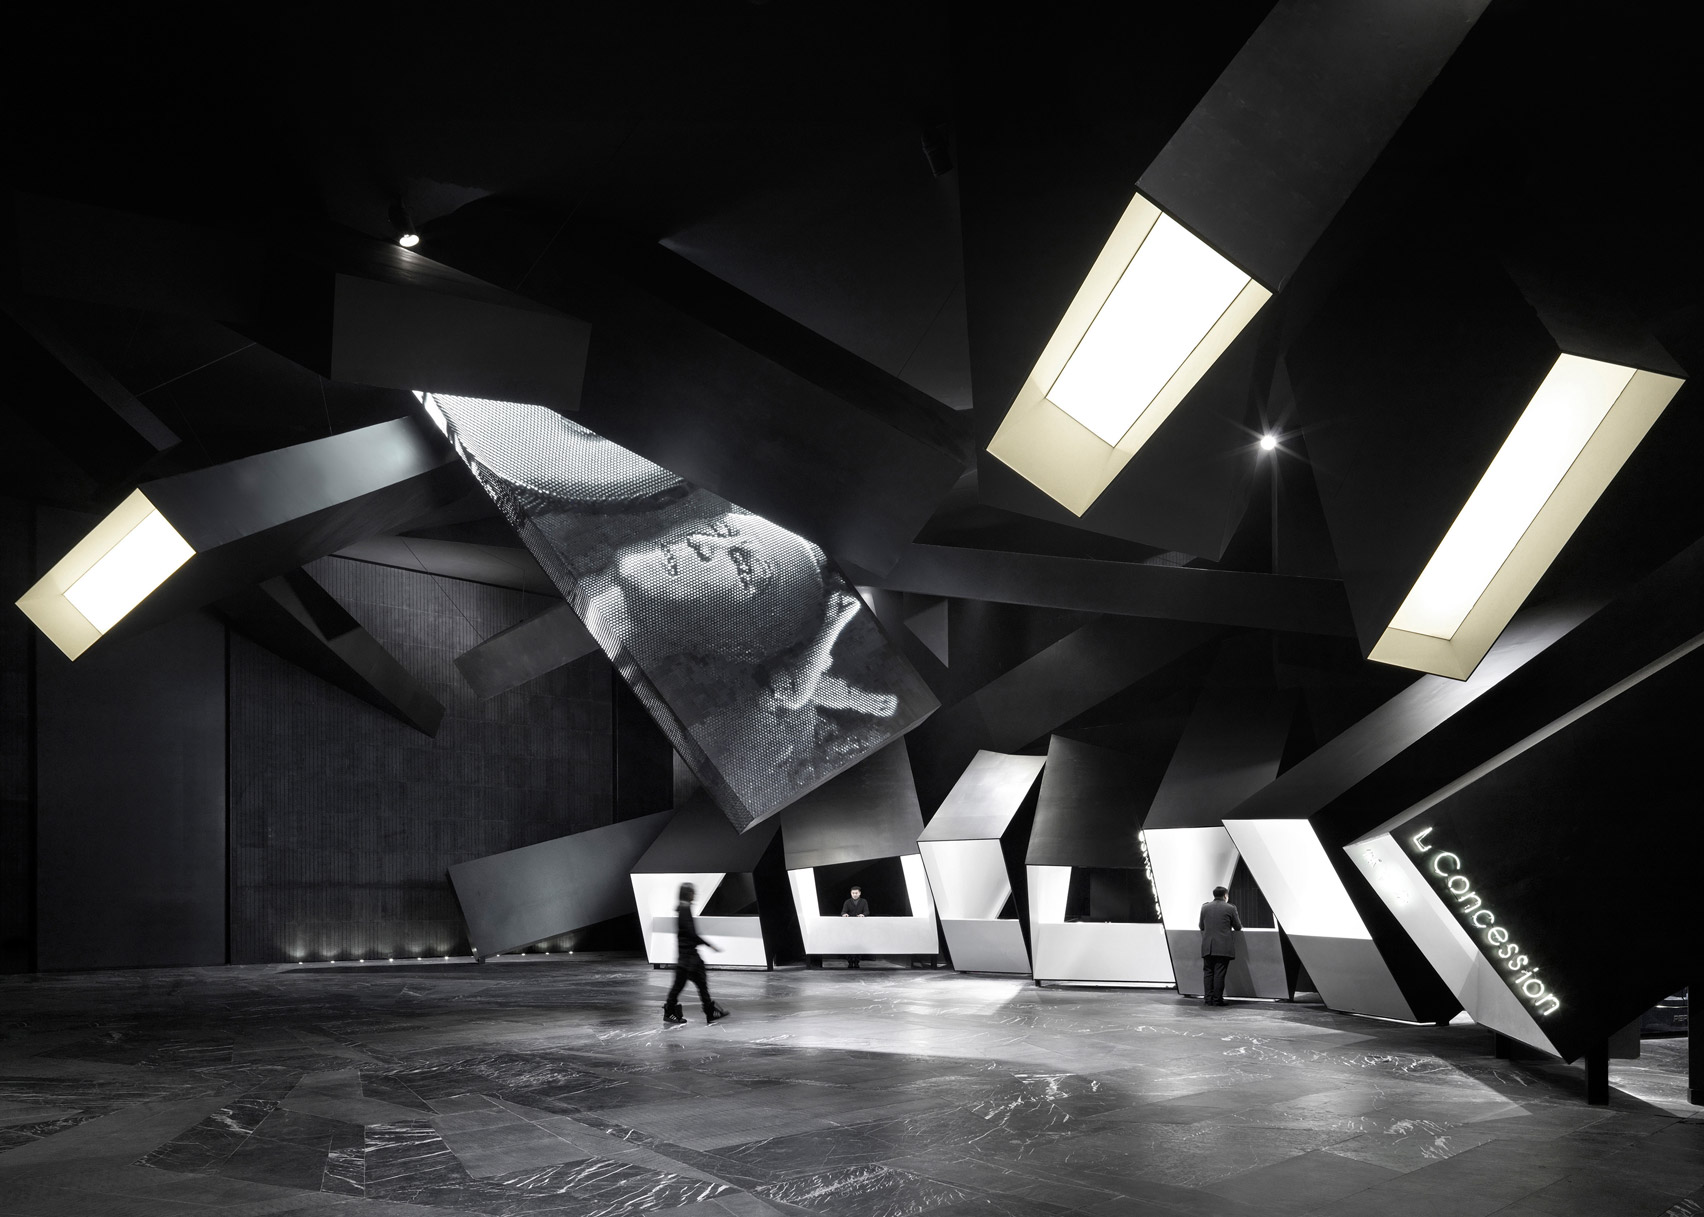 Exploded Cinema by Ajax Law and Virginia Lung – Golden A' Interior Space, Retail and Exhibition Design Award in 2016